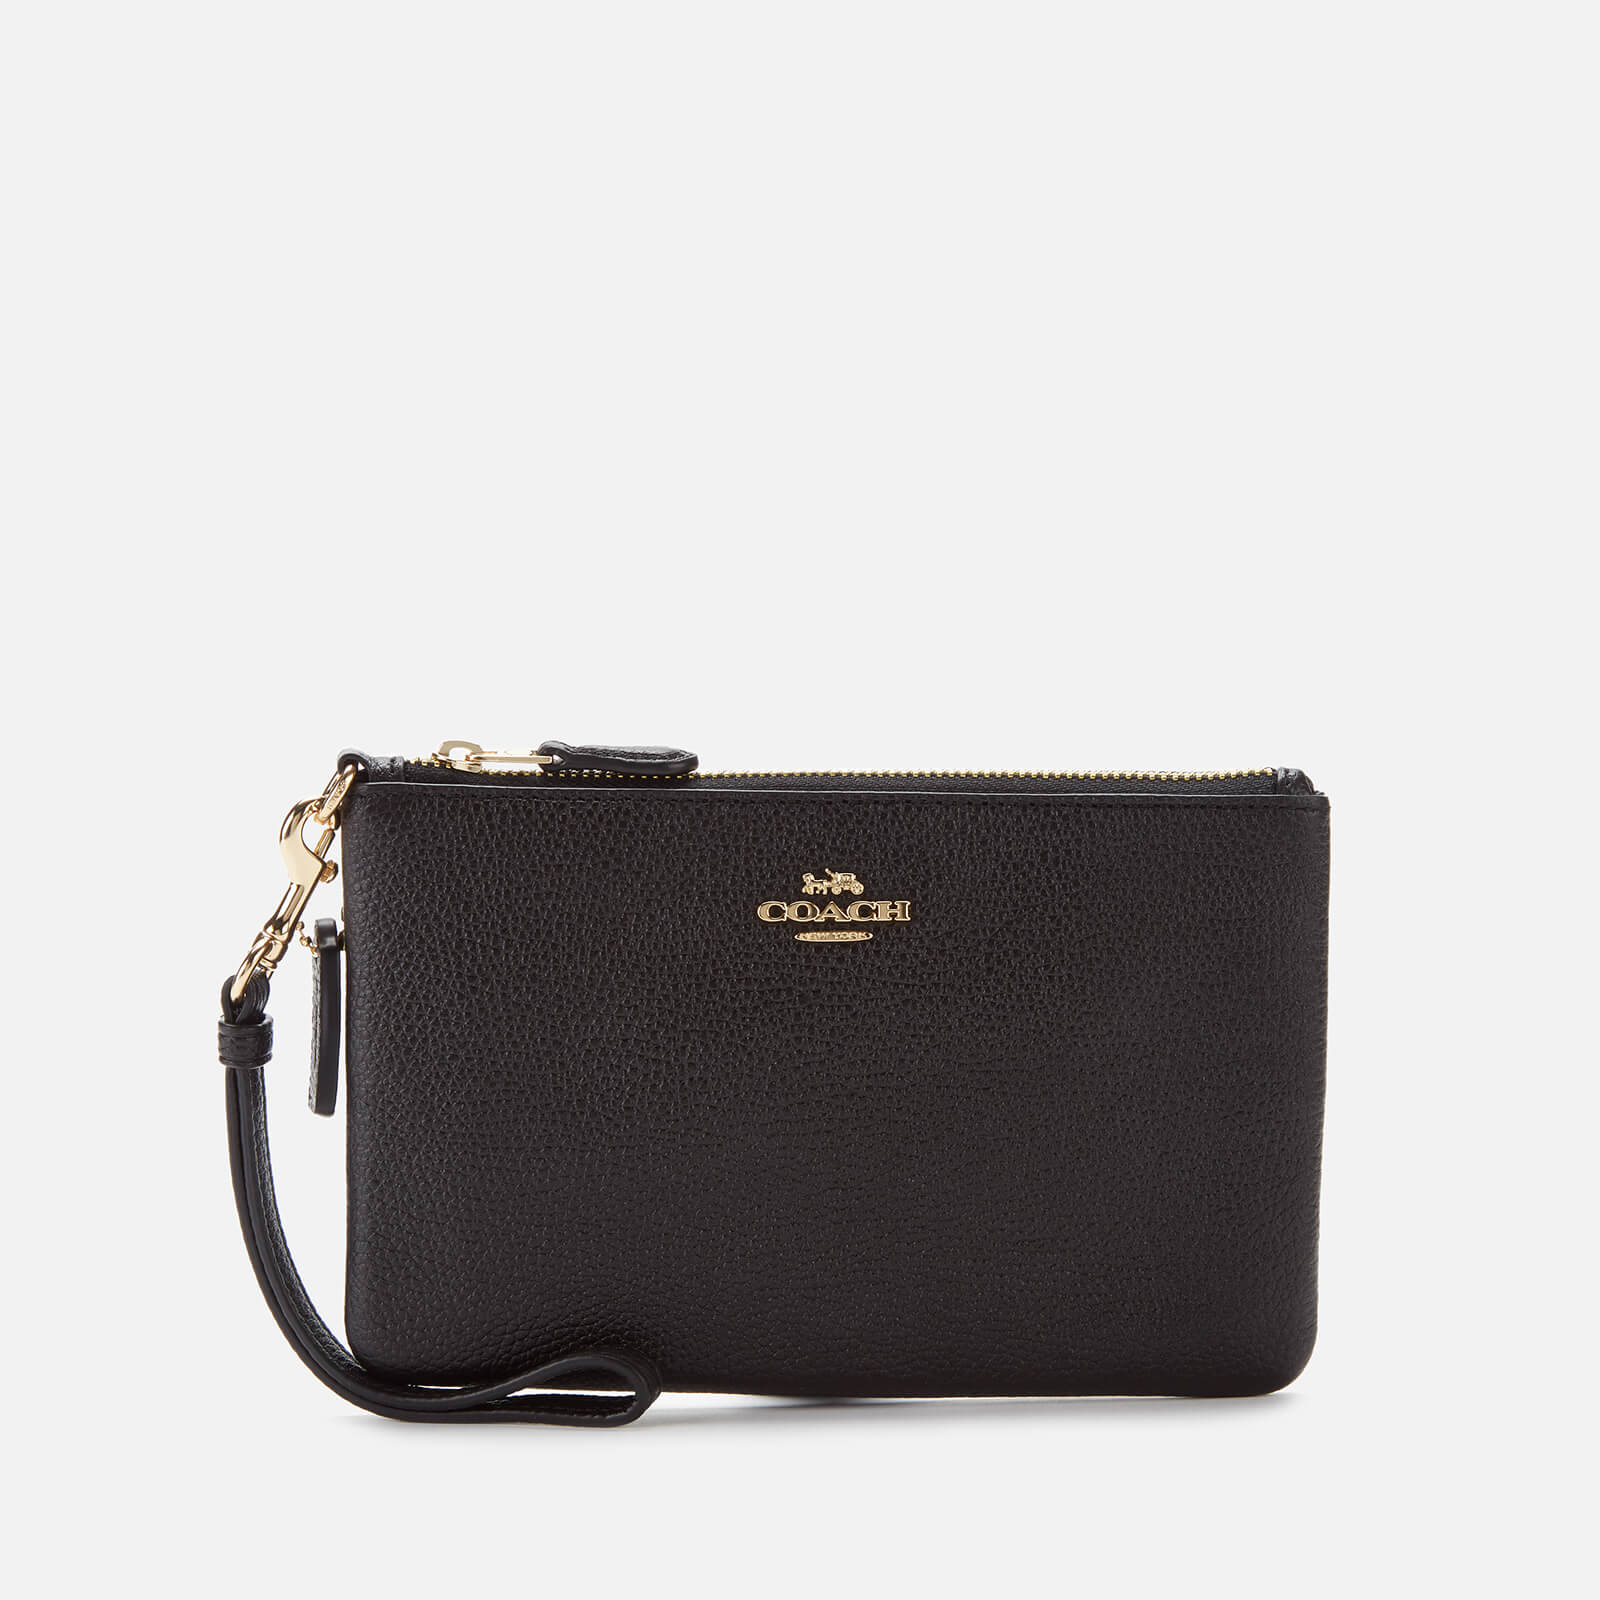 Coach Women's Polished Pebble Small Wristlet - Black